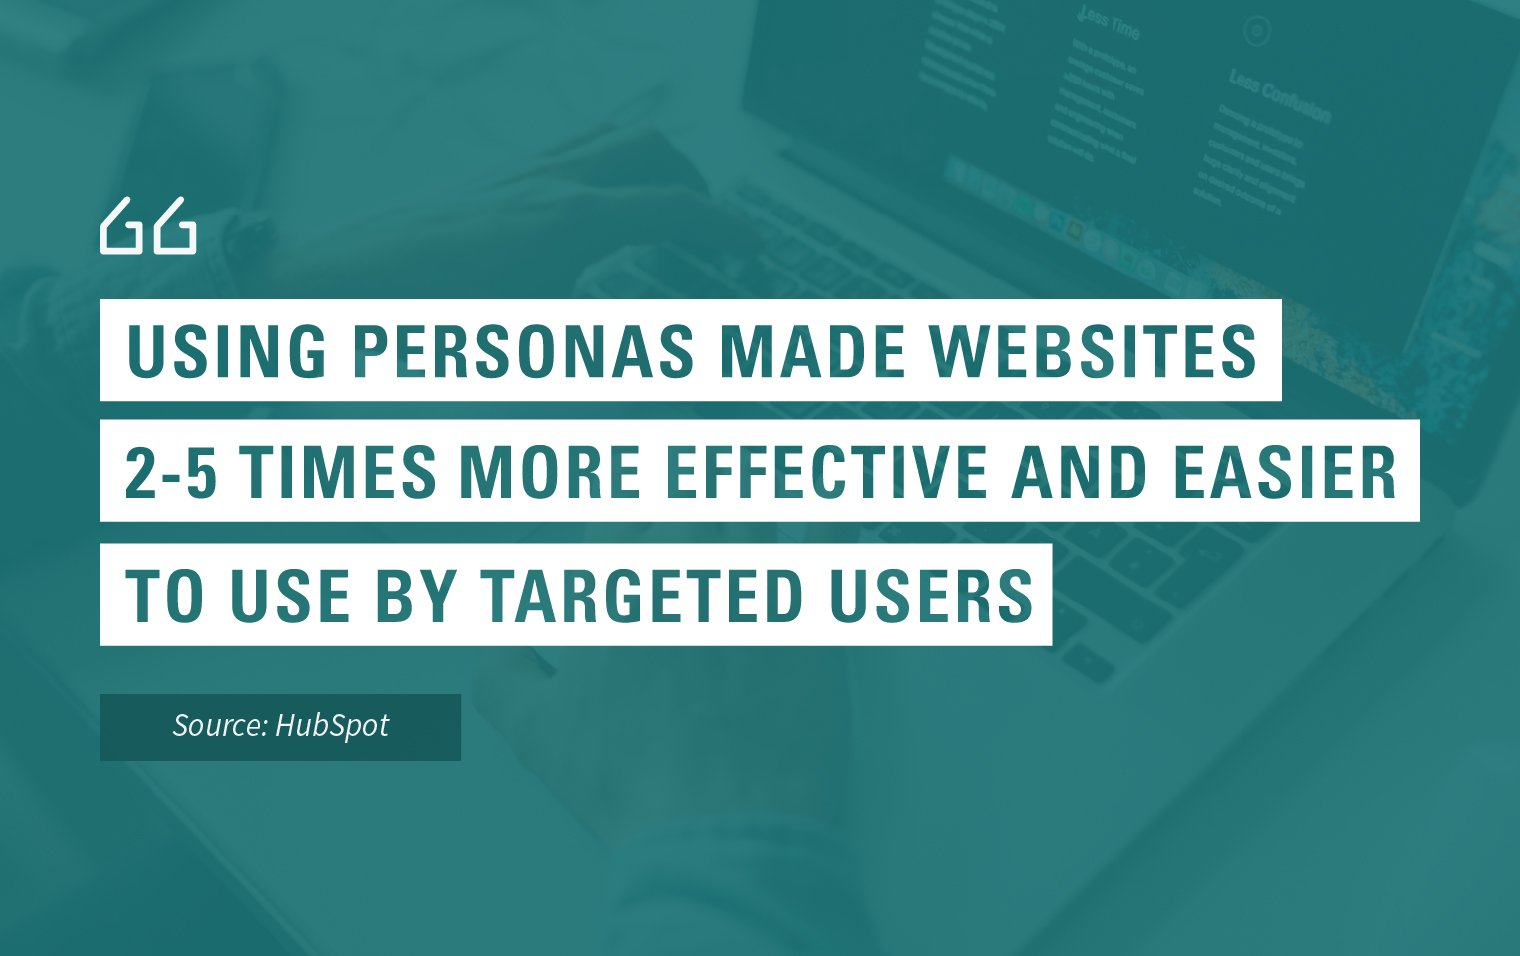 MS_Agency_Blog_APRIL_Why_User_Personas_Matter_IMAGES_1